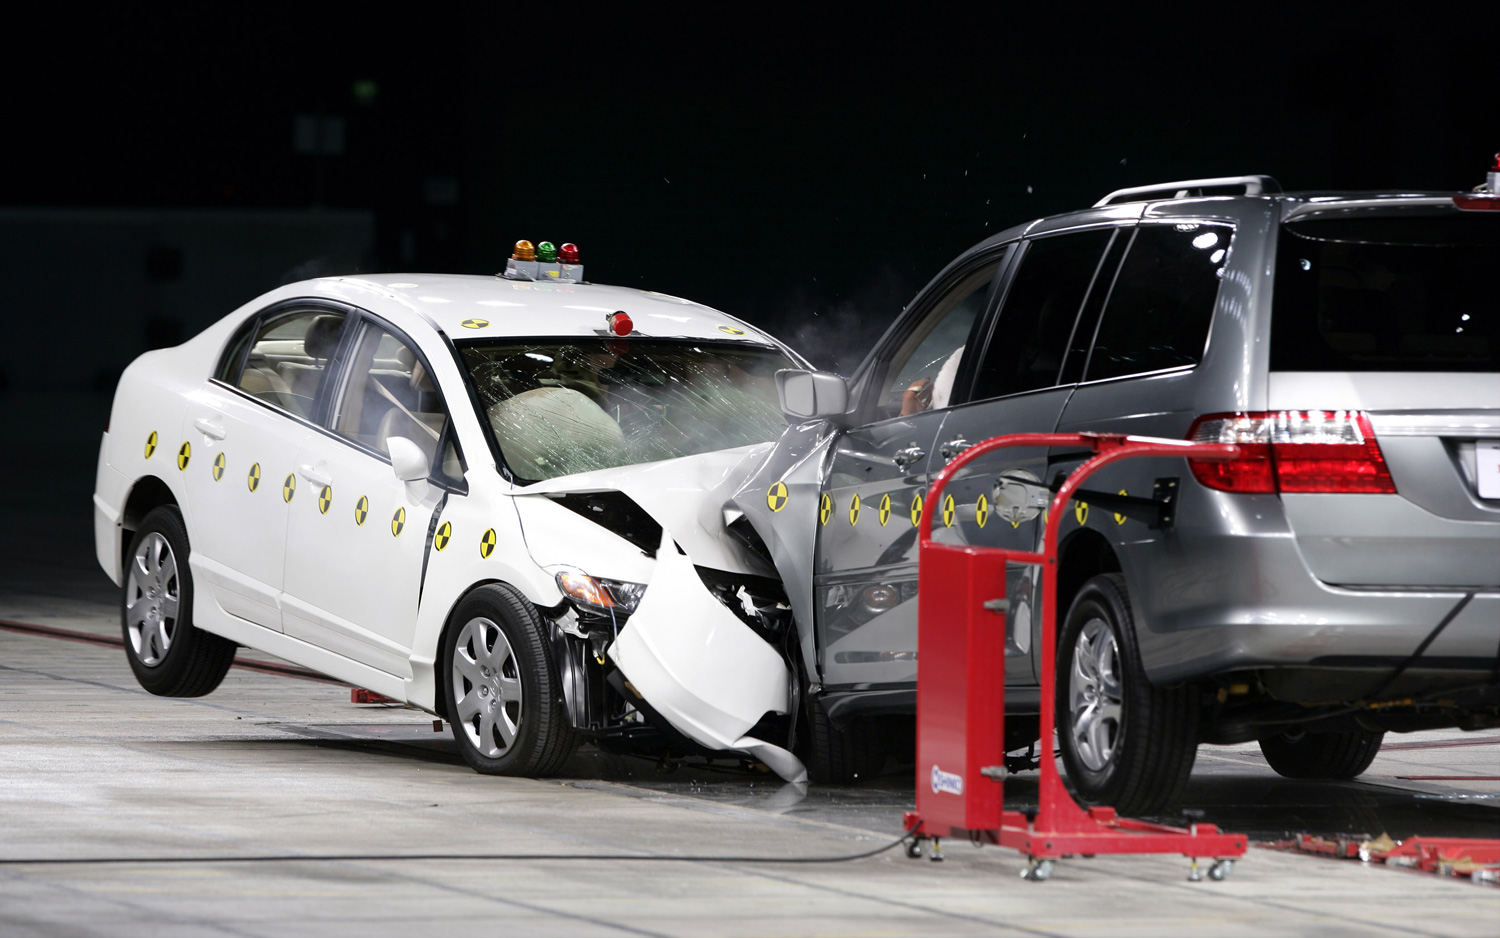 car vs suv Suv vs sedan safety one important factor that affects the safety of a vehicle is its size with more metal between them and the road, suv drivers enjoy a higher rate of safety than those in sedans and smaller cars, which may be more easily damaged.